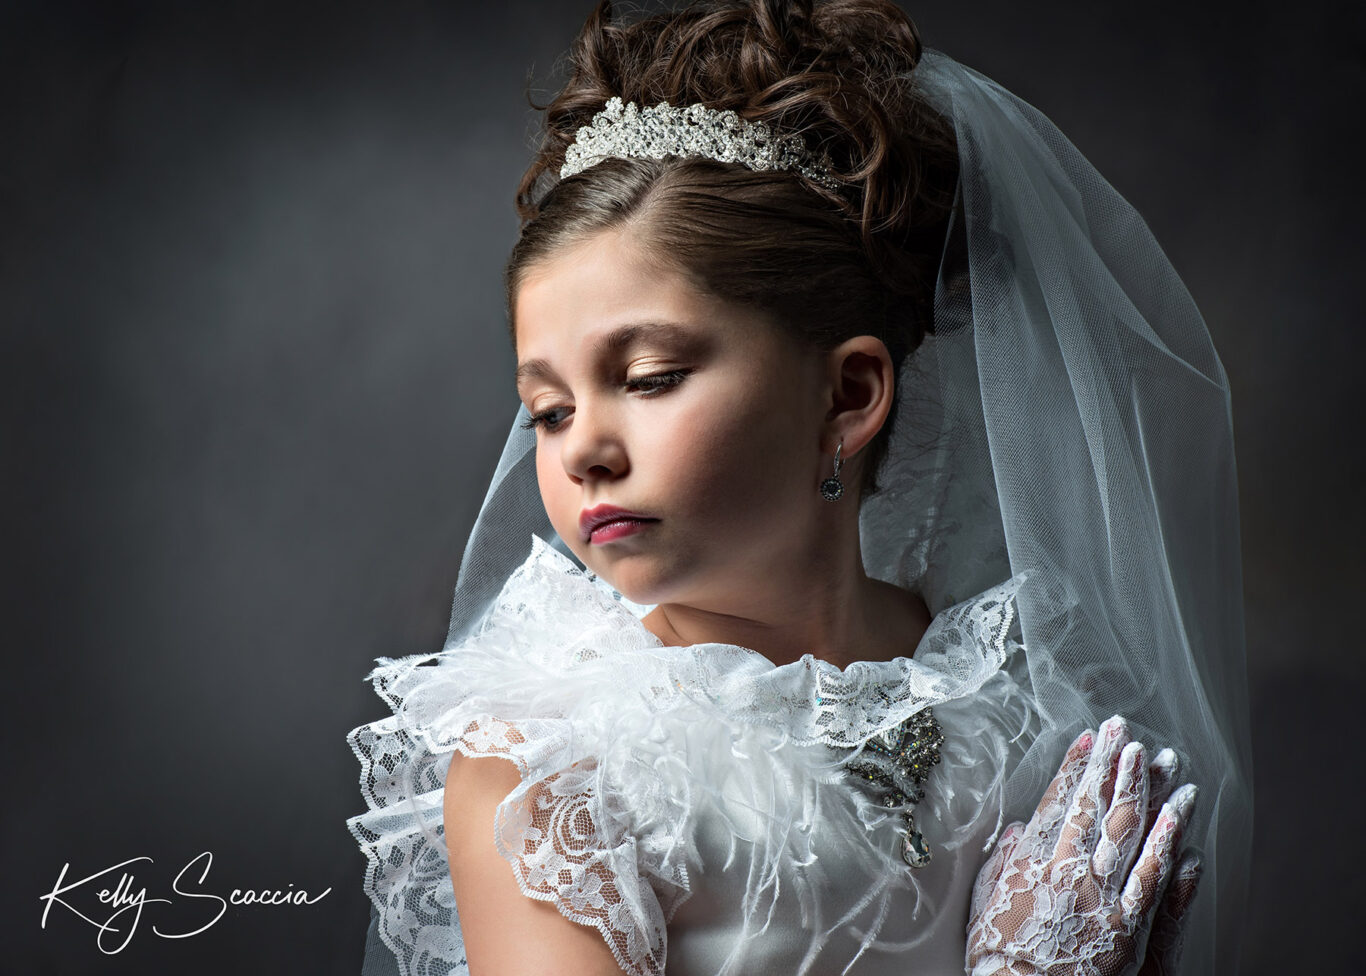 Communion girl praying looking over her shoulder